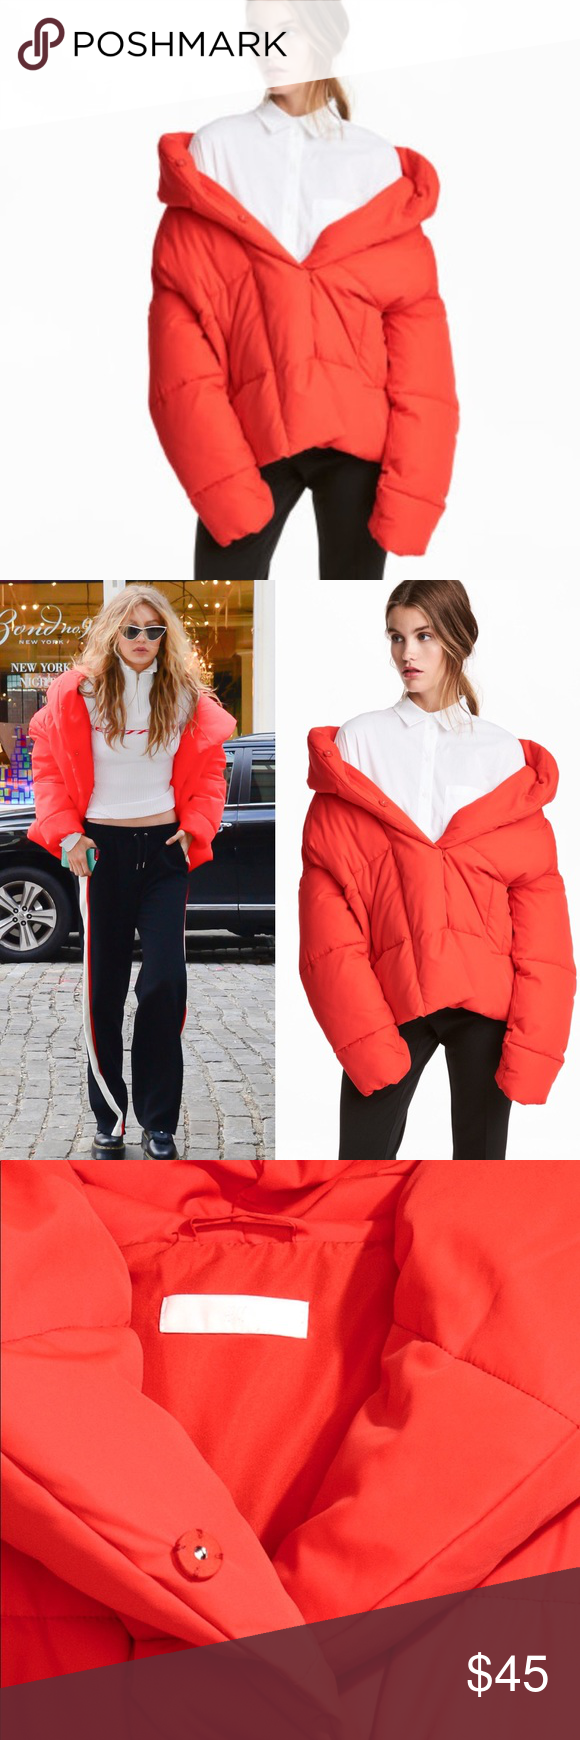 Gigi Hadid H M Red Padded Puffer Jacket With Hood Hooded Jacket Jackets Puffer Jackets [ 1740 x 580 Pixel ]